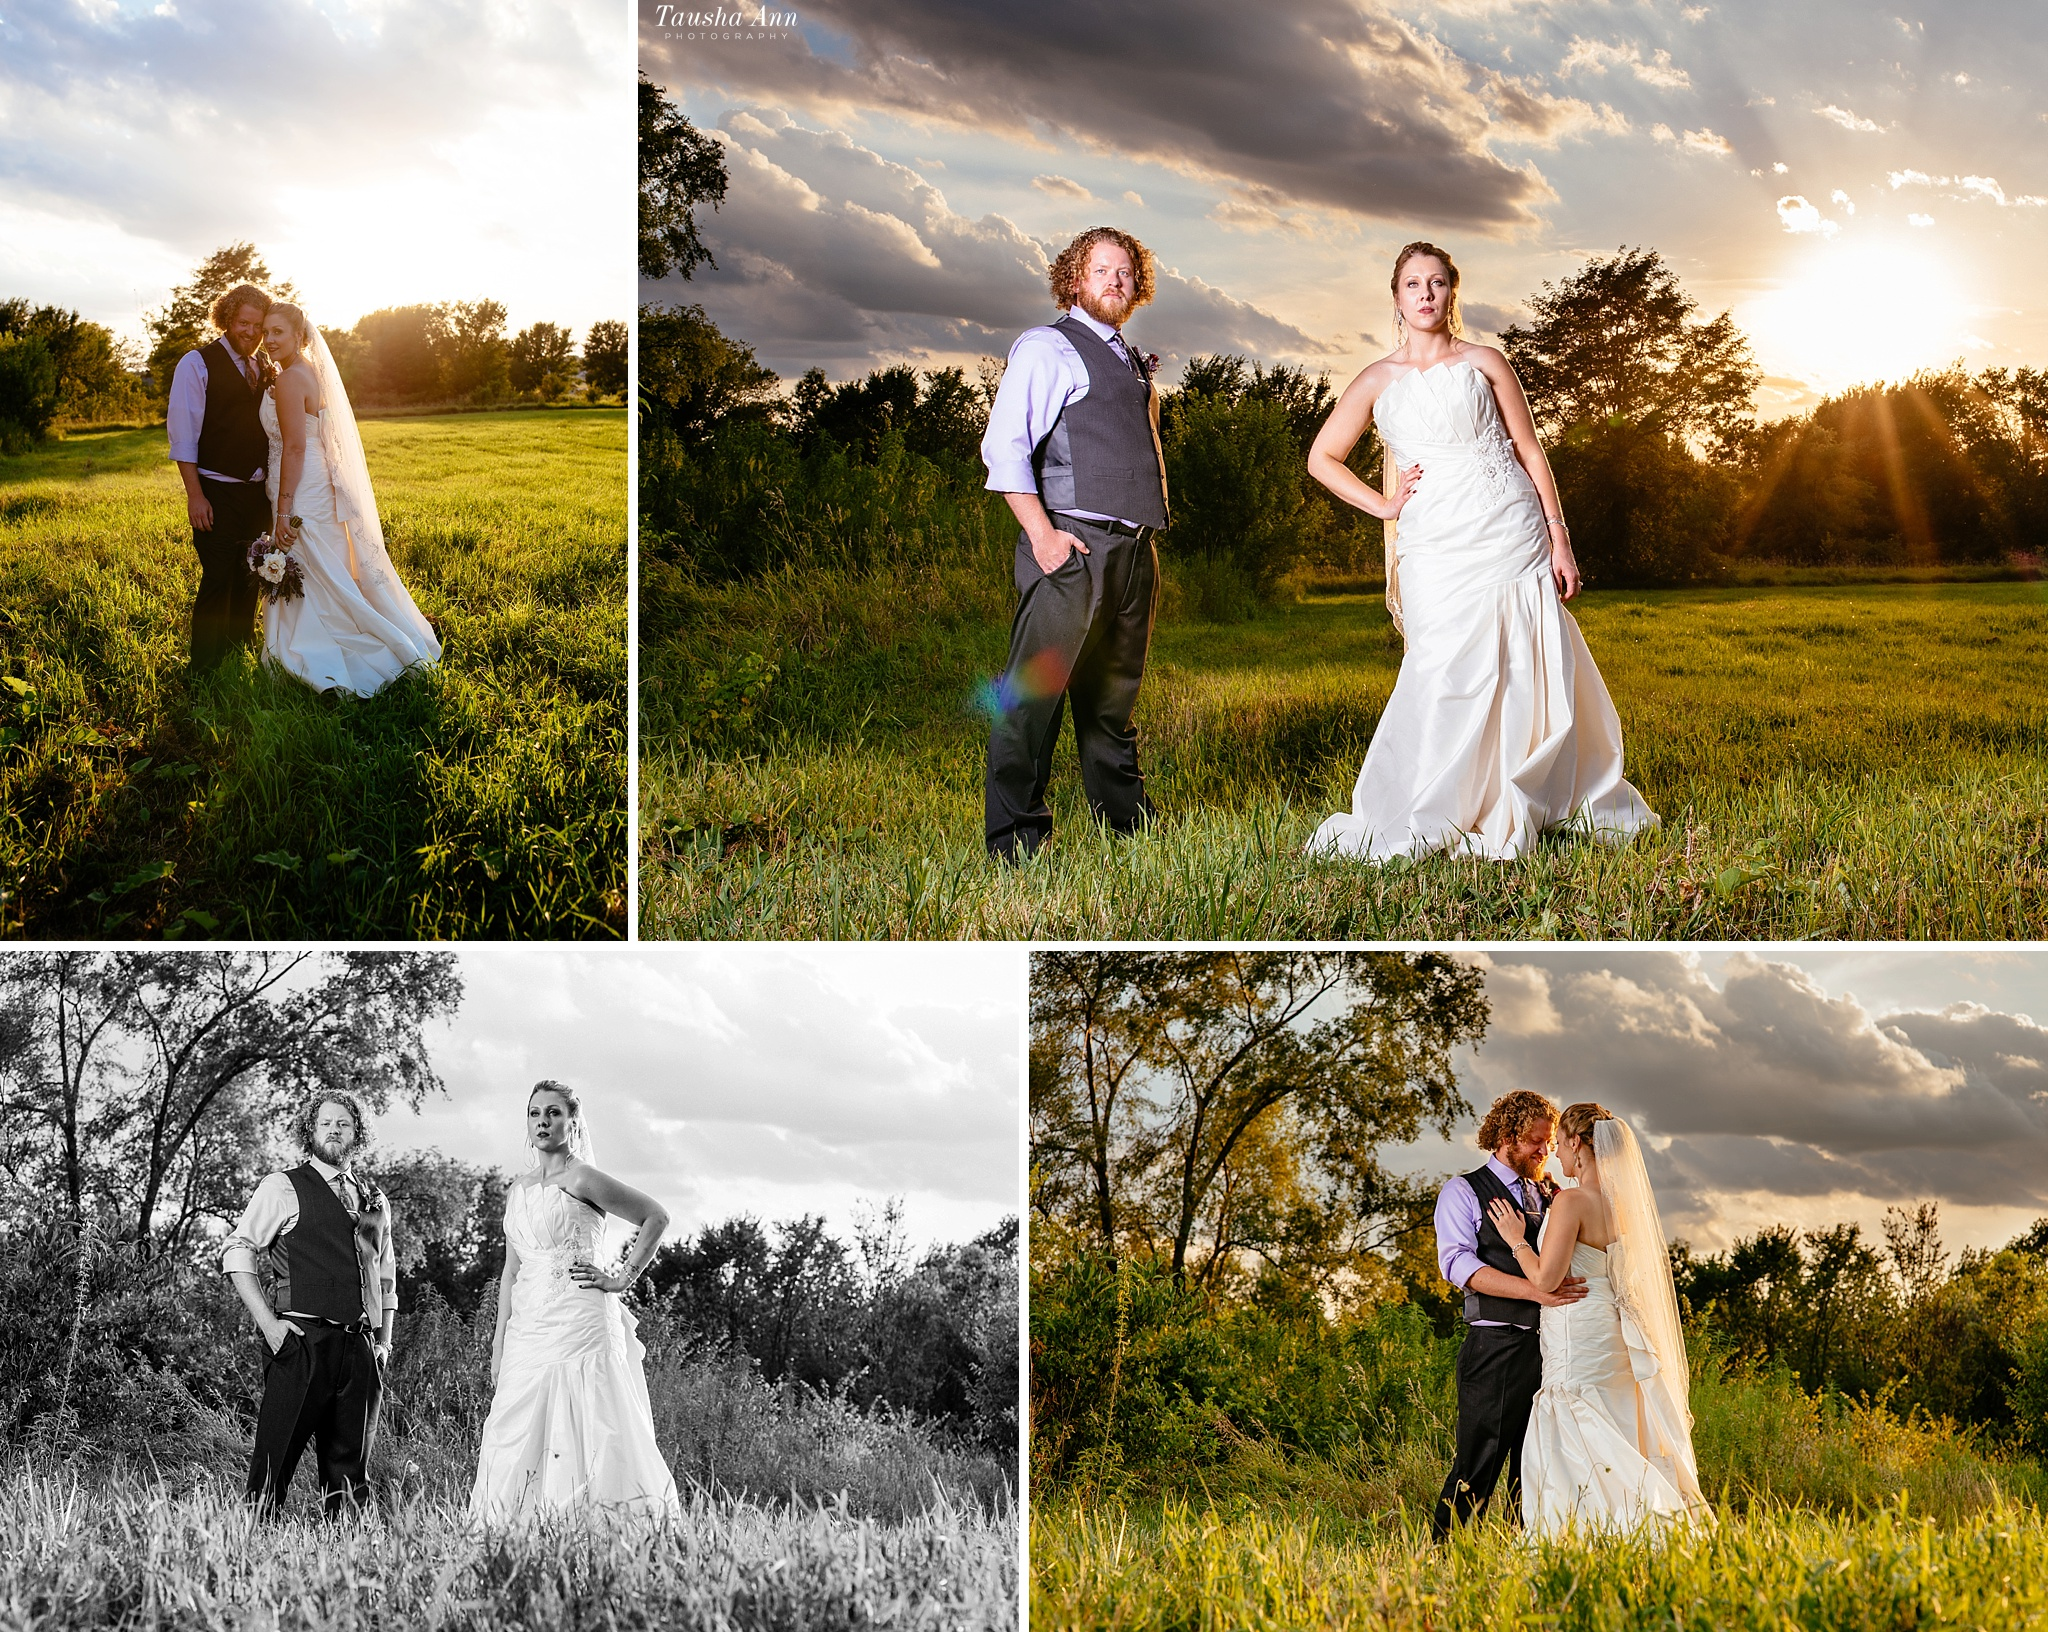 Epic portraits of bride and groom outdoors with einstein light and sun peeking through the clouds.